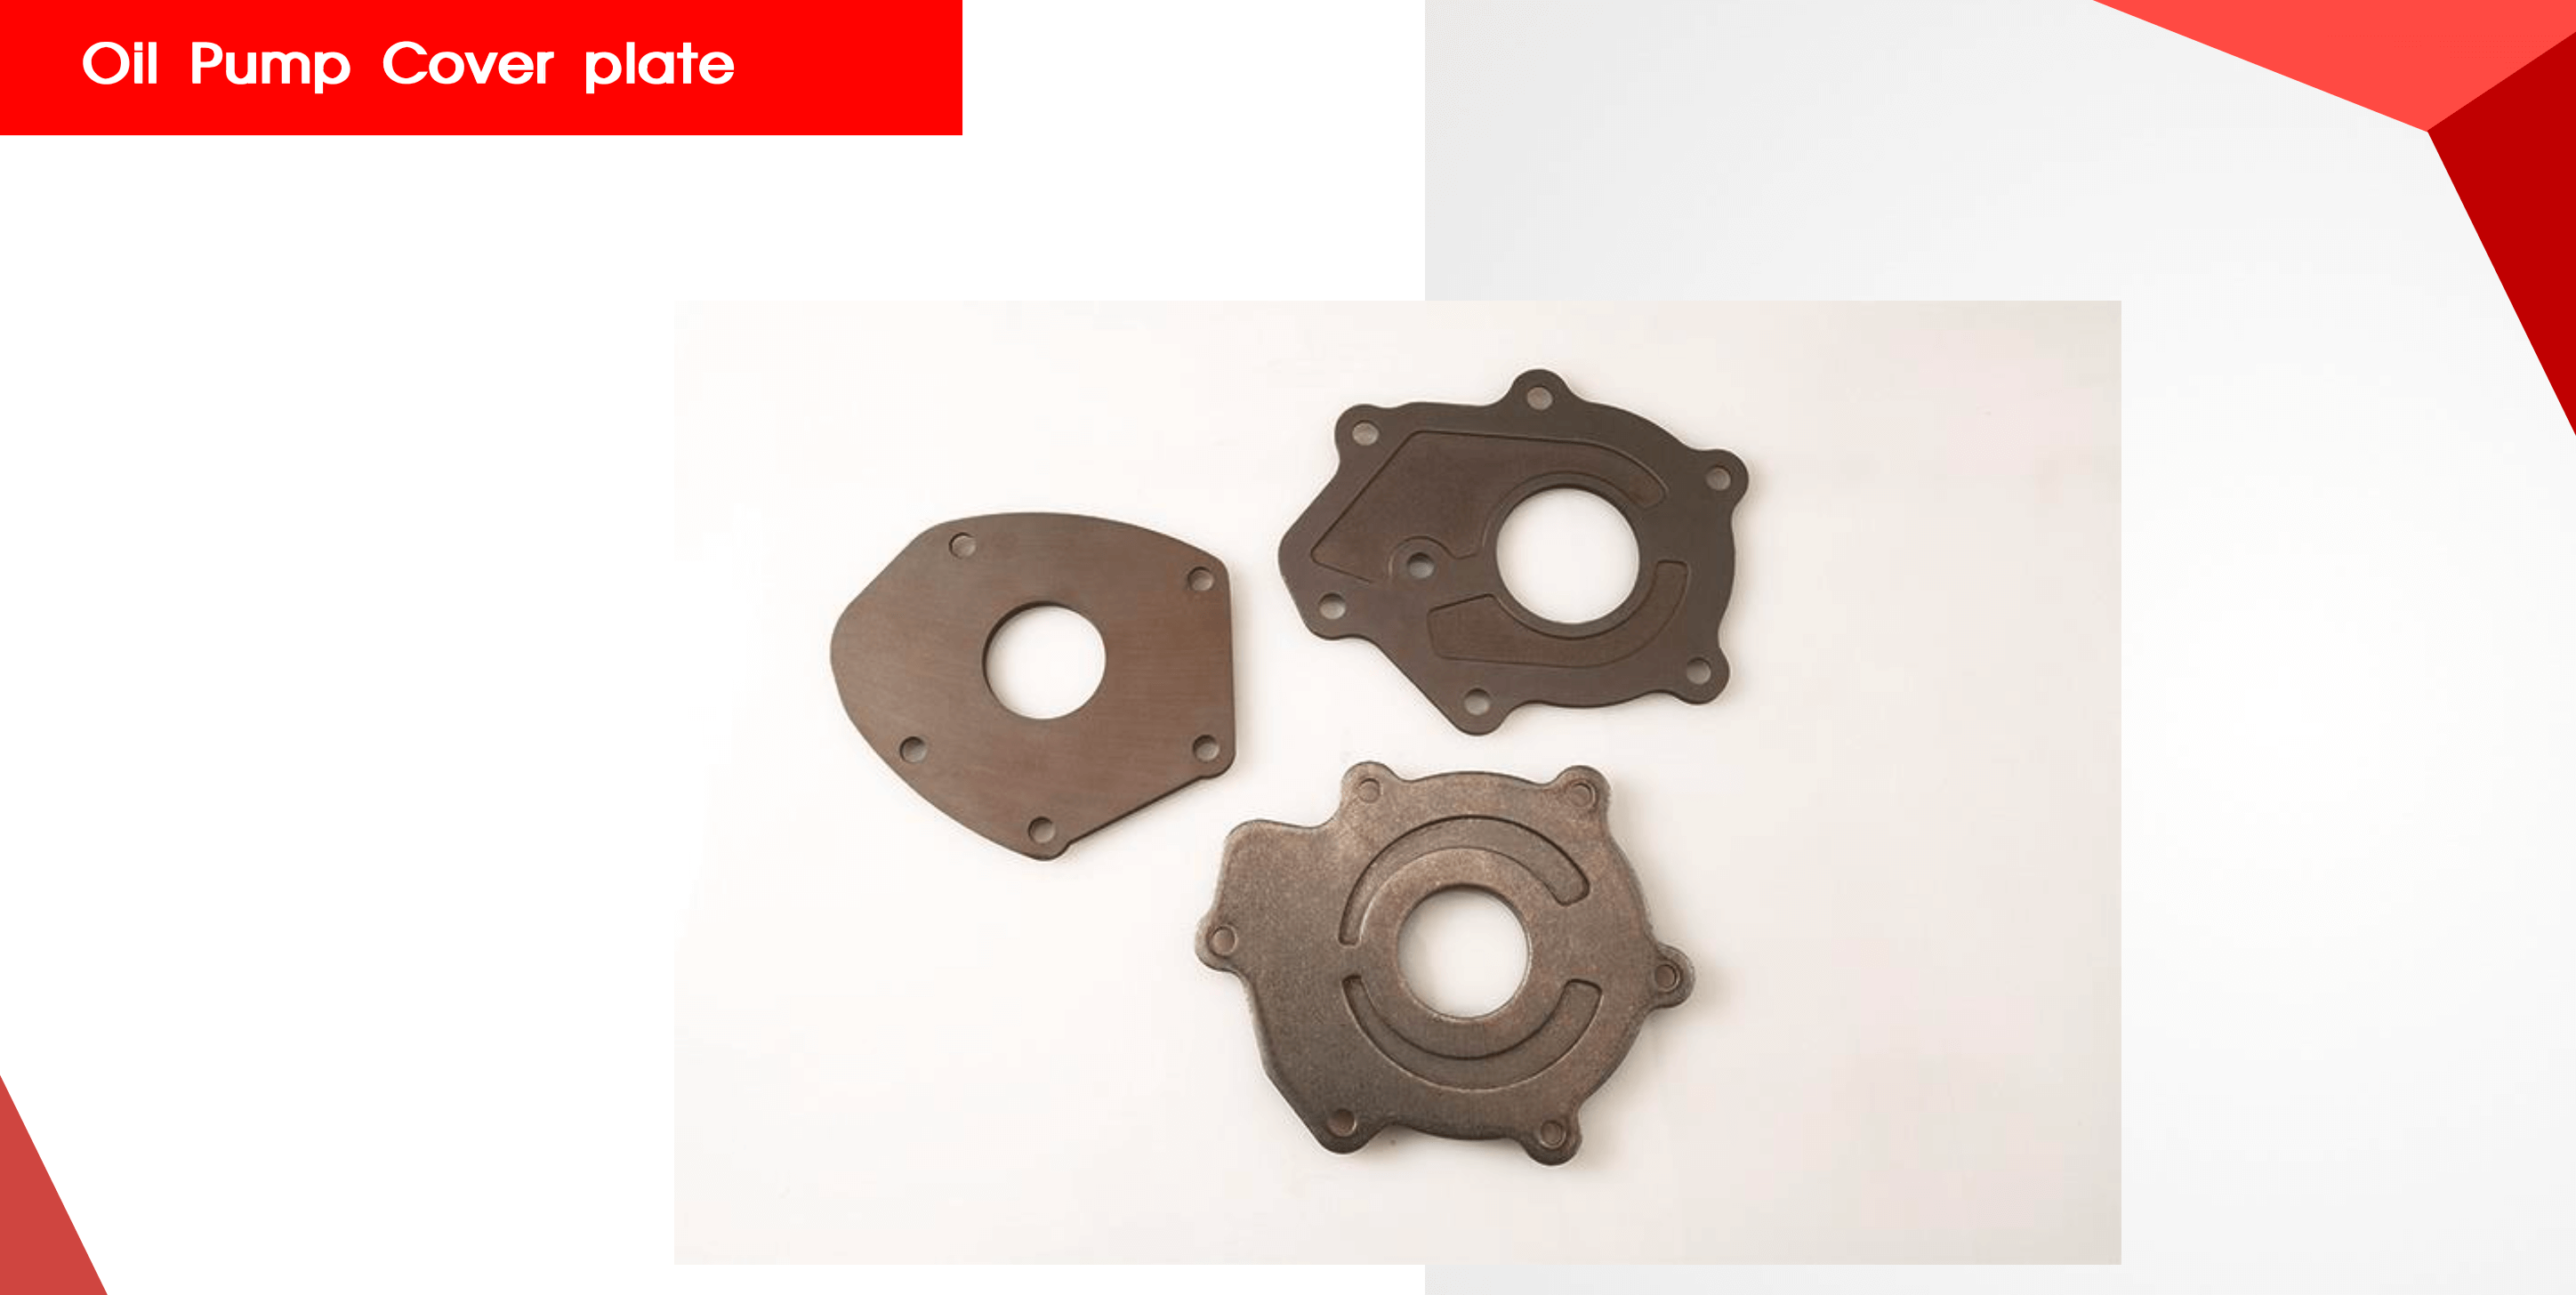 Oil Pump cover plate